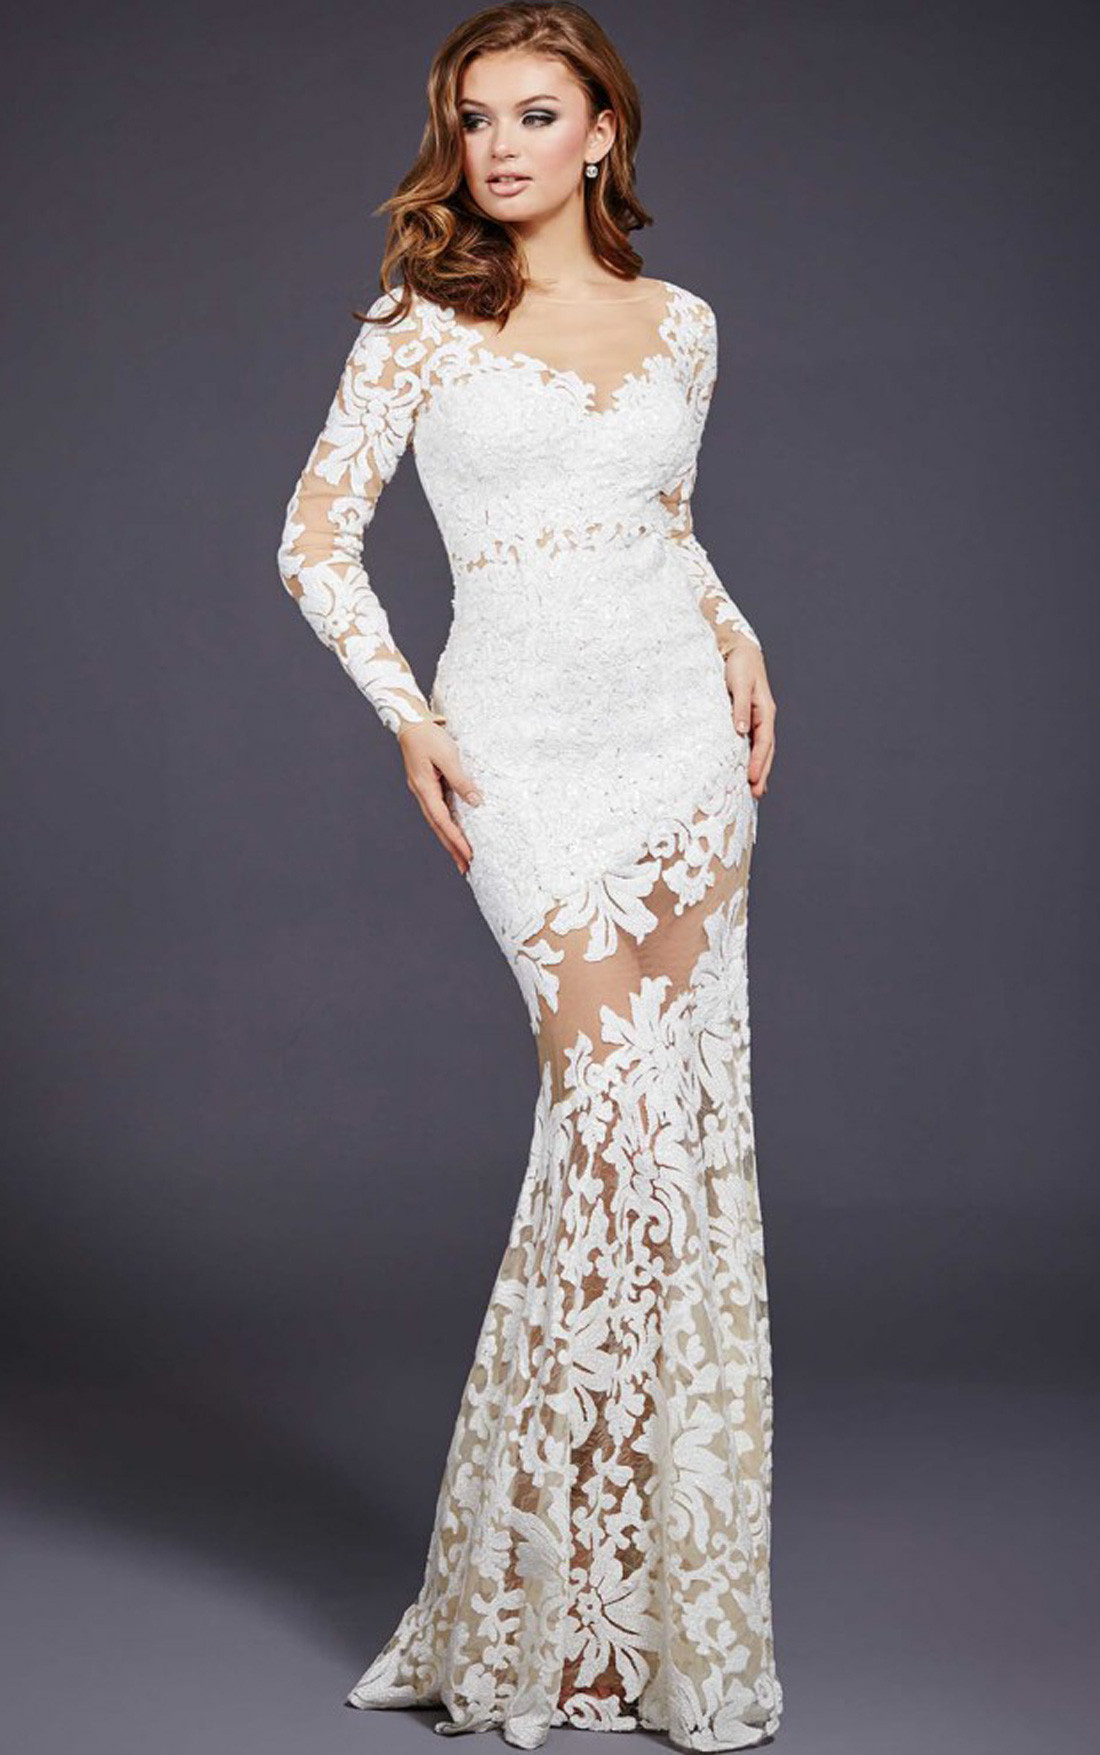 Jovani Dresses | Womens White Long Sleeve Lace Sequinned ...